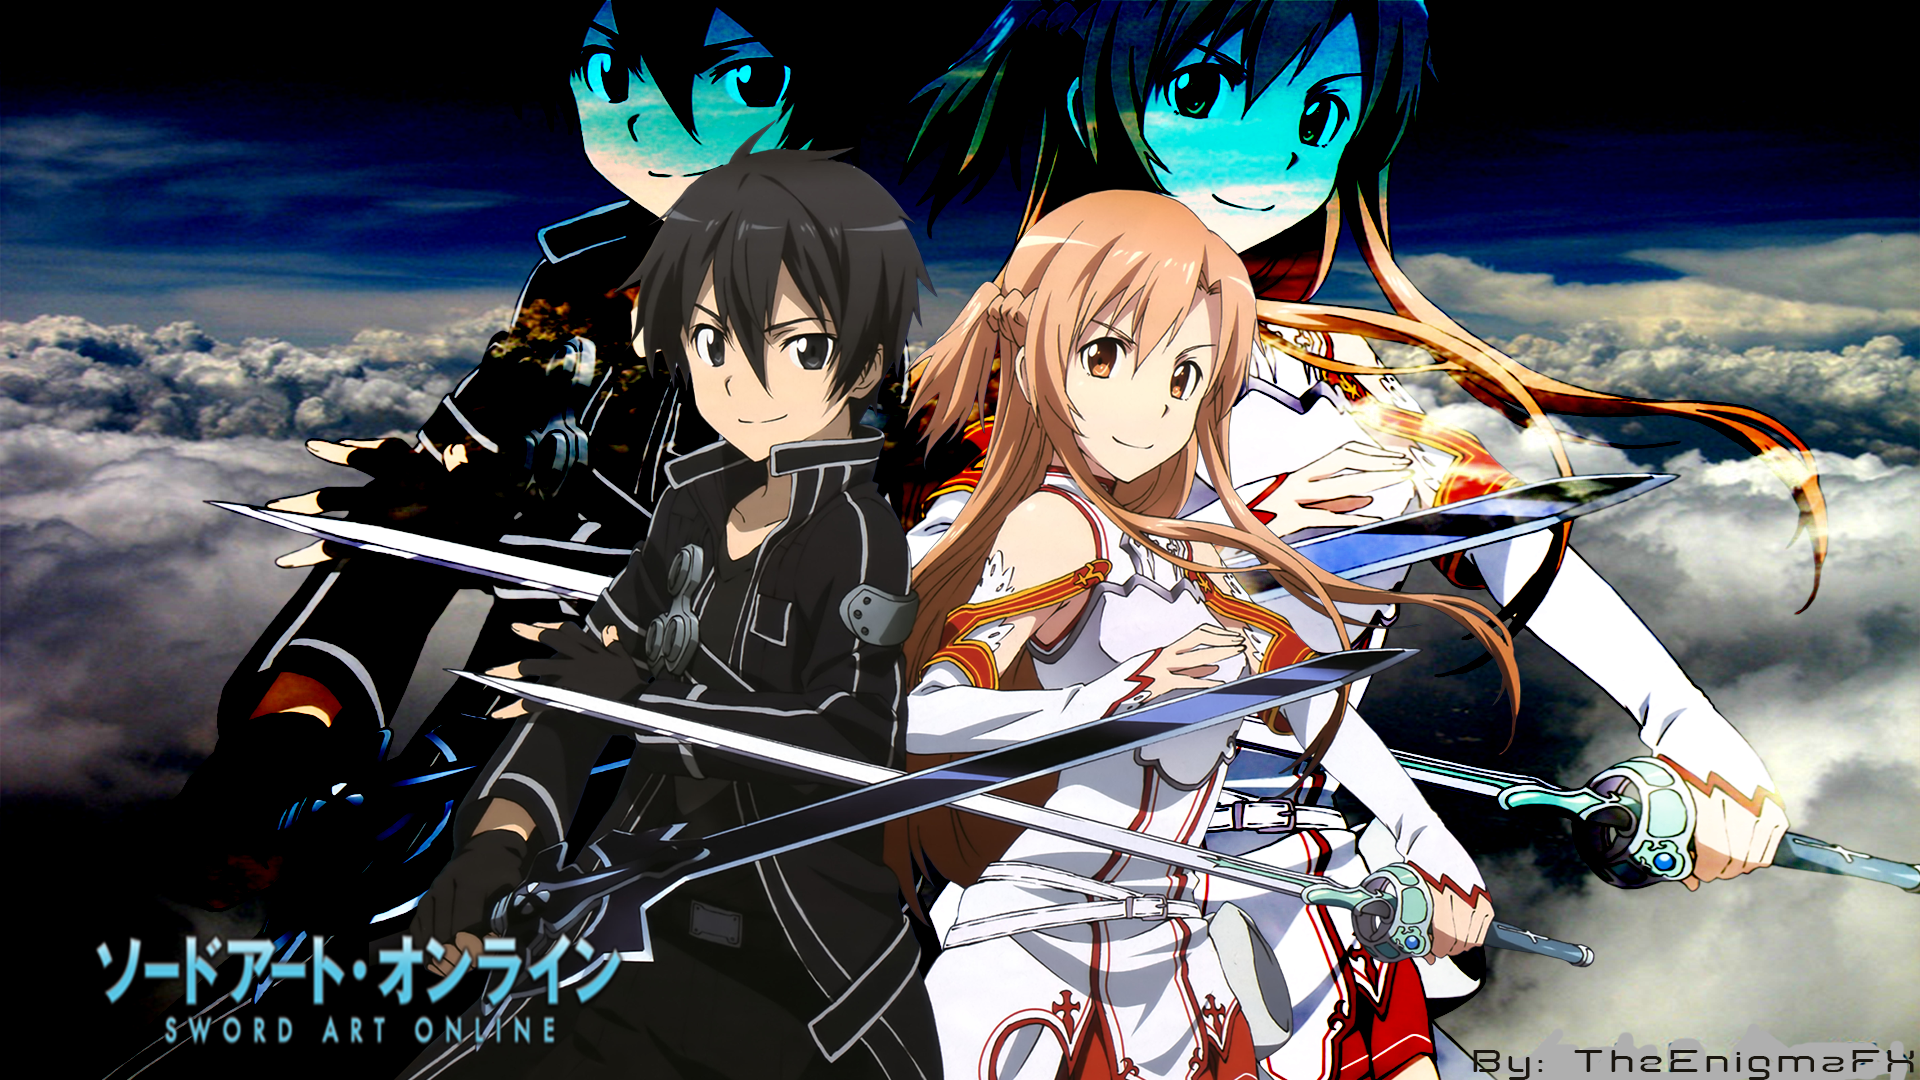 Tags Background Sword Art Online Desktop Date 13 1920x1080